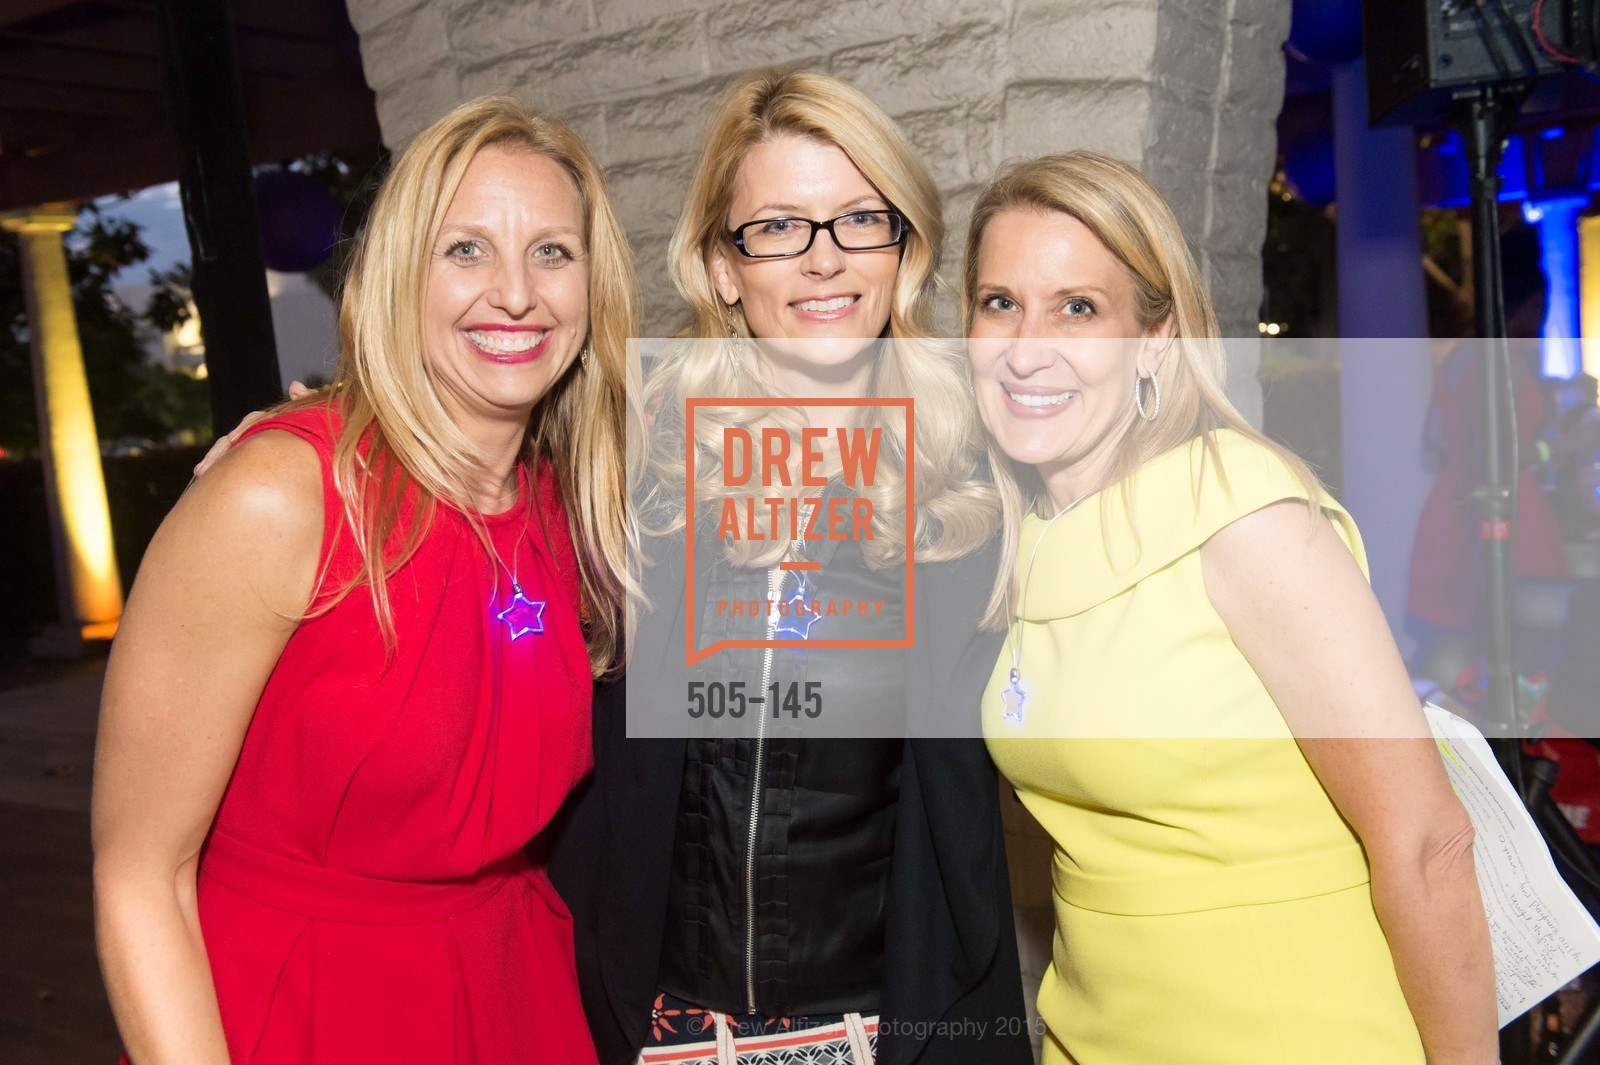 Jennie Lang, Diane Dwyer, Kim Boyanowski, DREAMS HAPPEN: Playhouse Auction and Gala, Stanford Shopping Center, June 5th, 2015,Drew Altizer, Drew Altizer Photography, full-service agency, private events, San Francisco photographer, photographer california